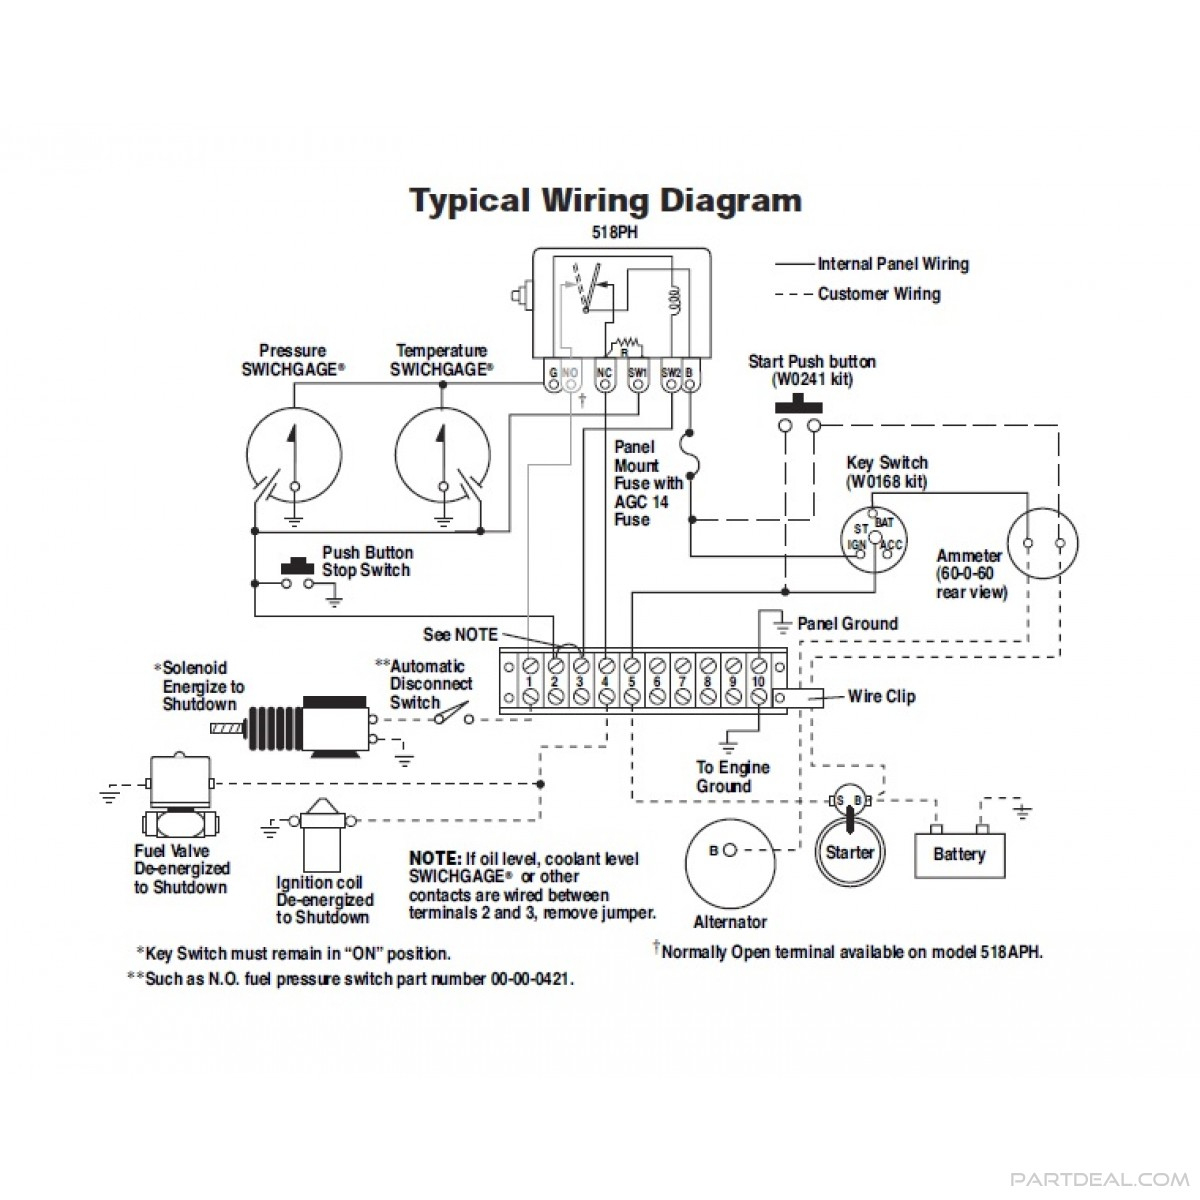 Murphy-Murphy Swichgage Shutdown Panel Kit 12V With Start/stop - Oil Pressure Switch Wiring Diagram